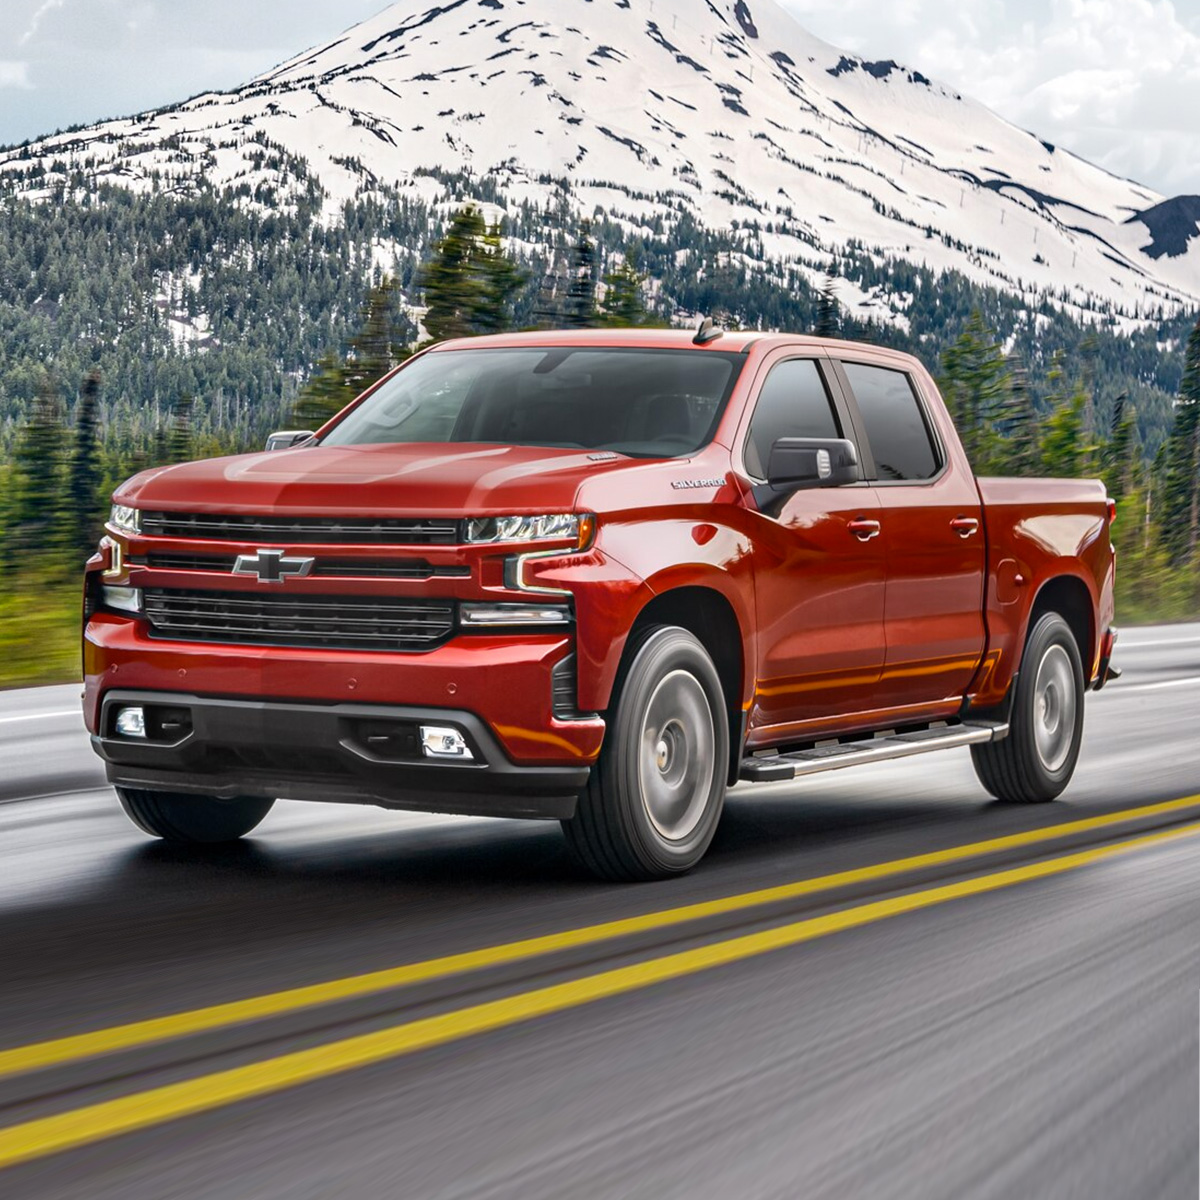 frontal profile of red chevrolet silverado pick up truck on the road with snow mountains in the background